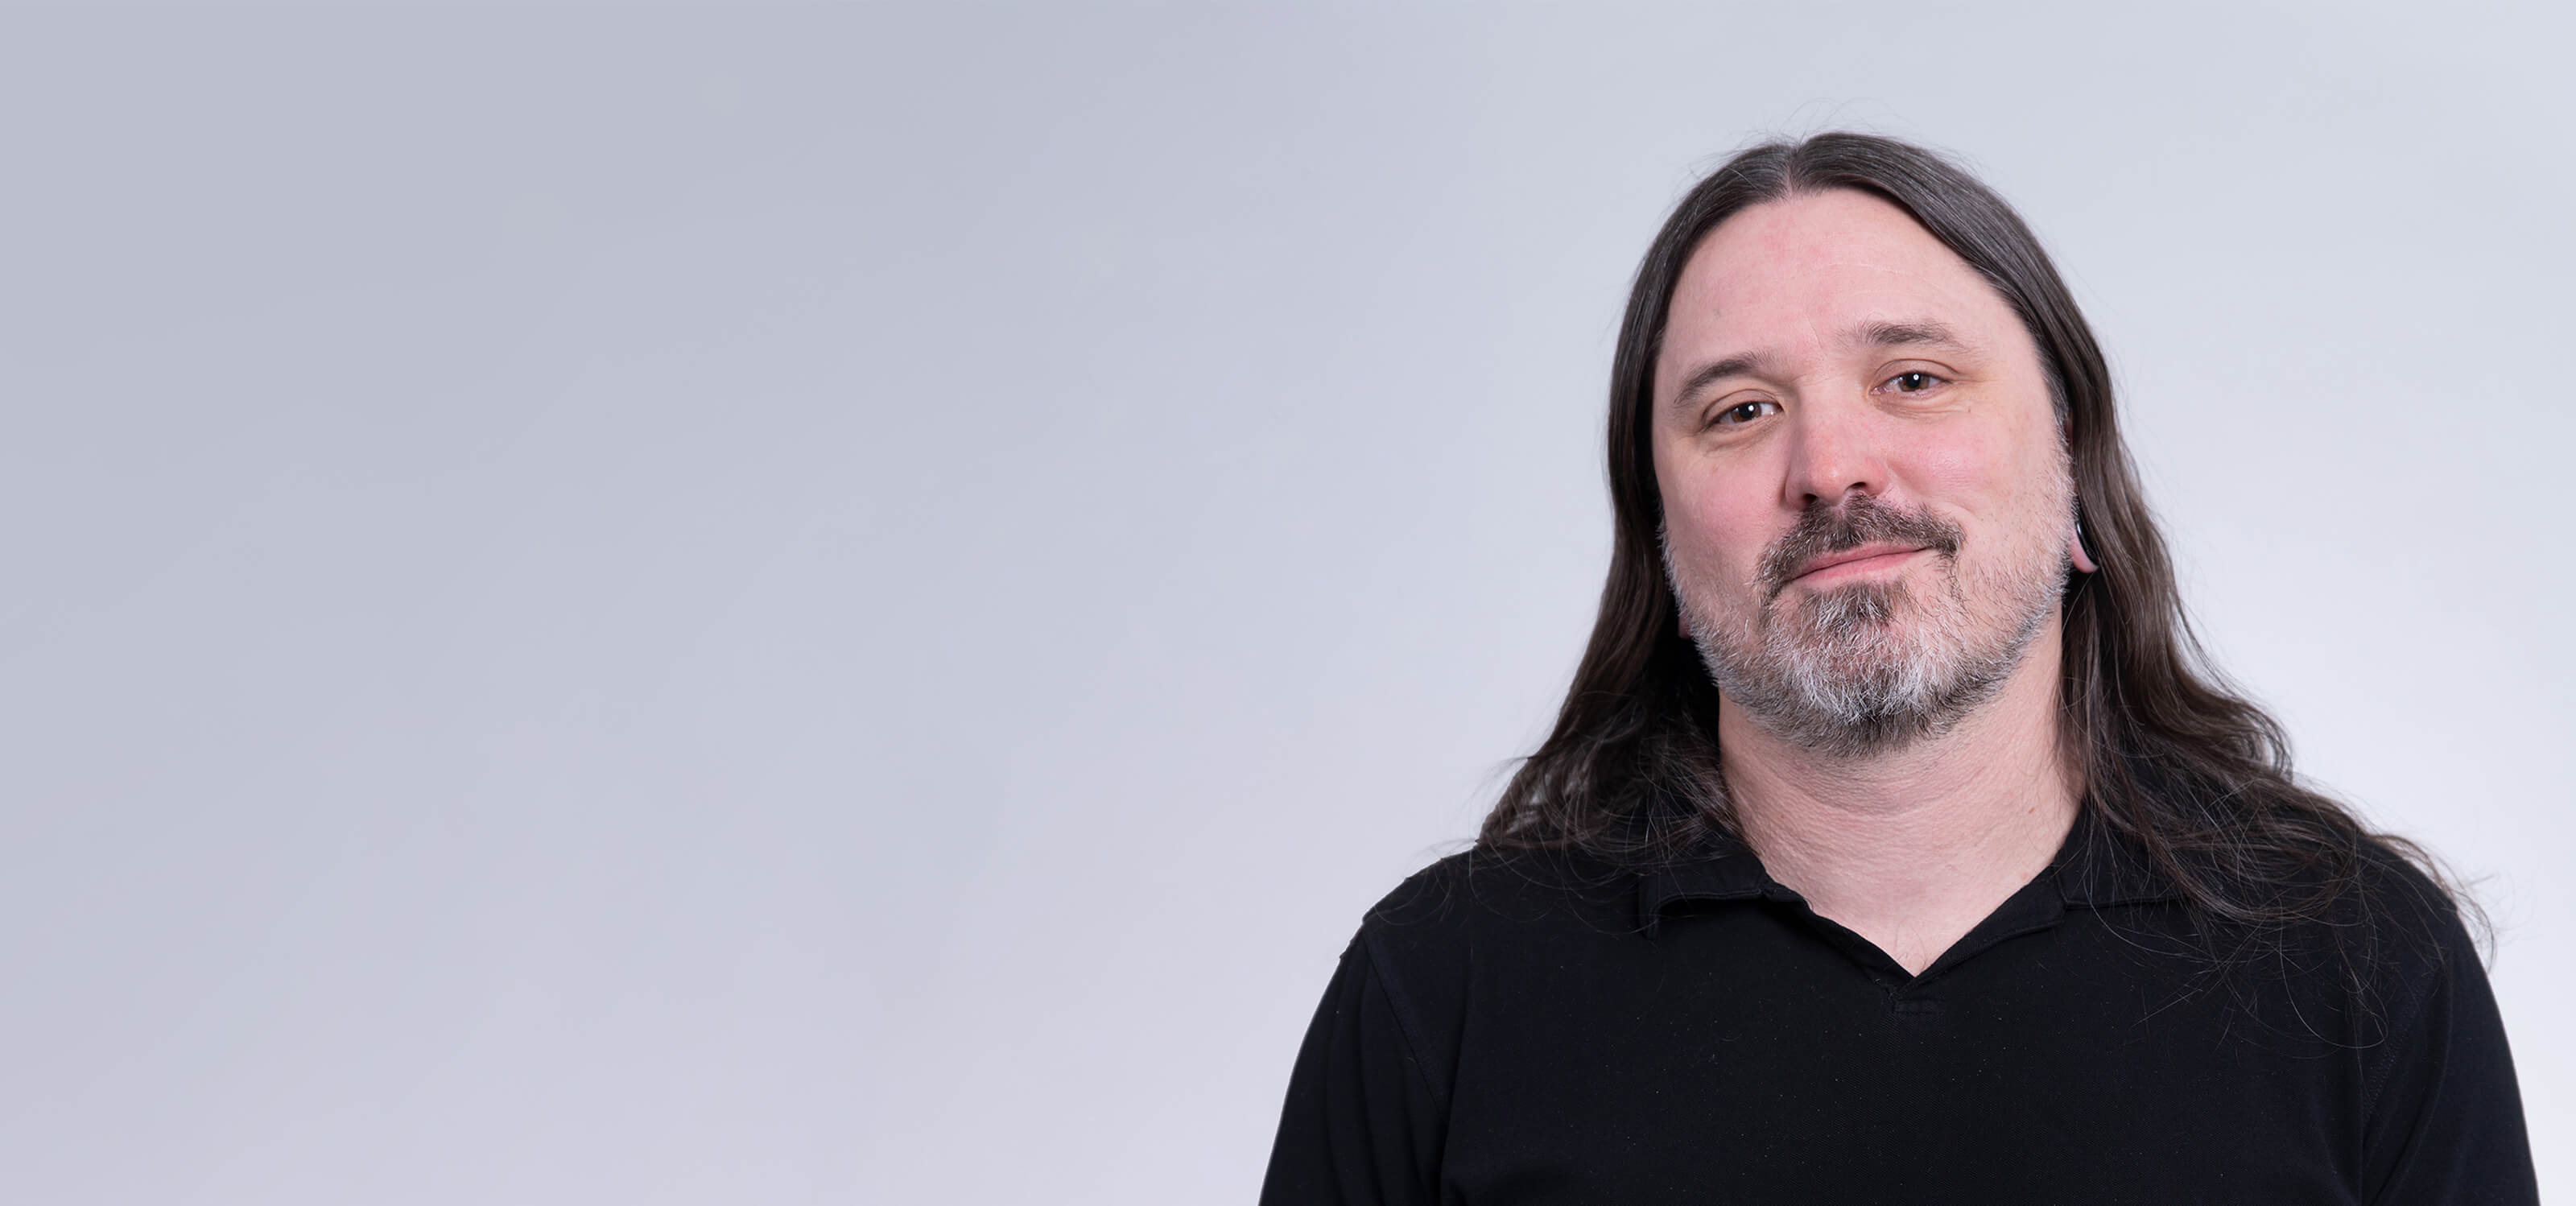 A headshot of DigiPen game and concept art instructor Rich Werner.